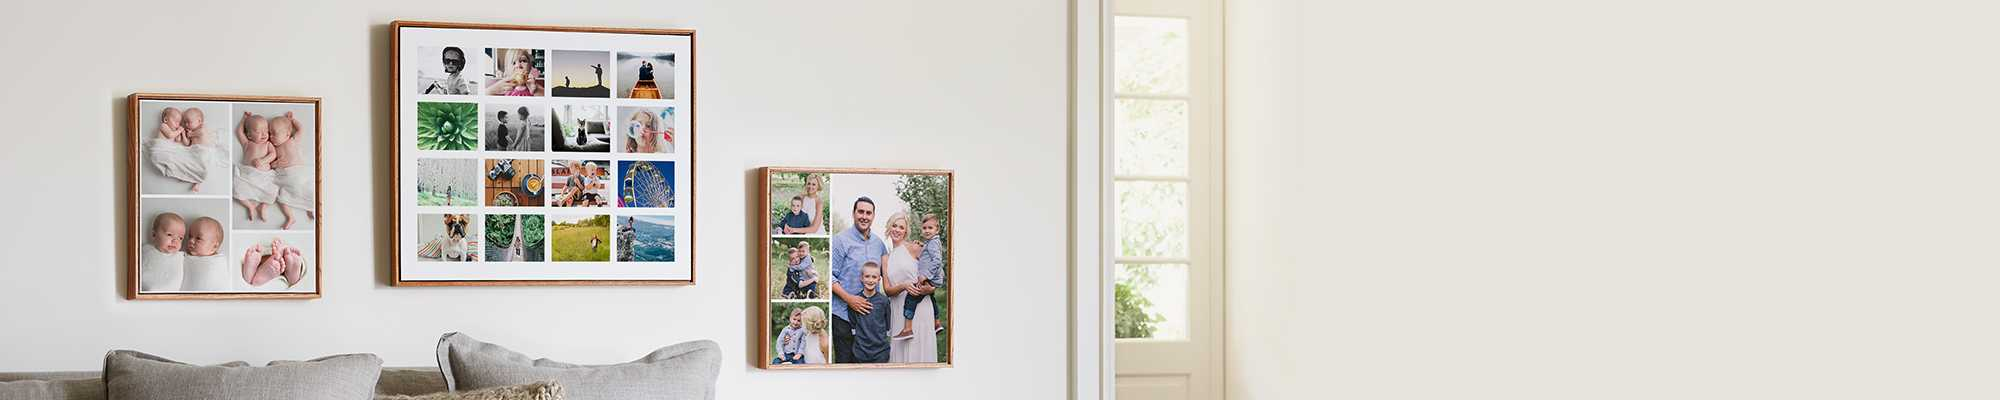 Collage Photo Gifts Make every photo count and create amazing collage prints, blankets, canvas, and more!